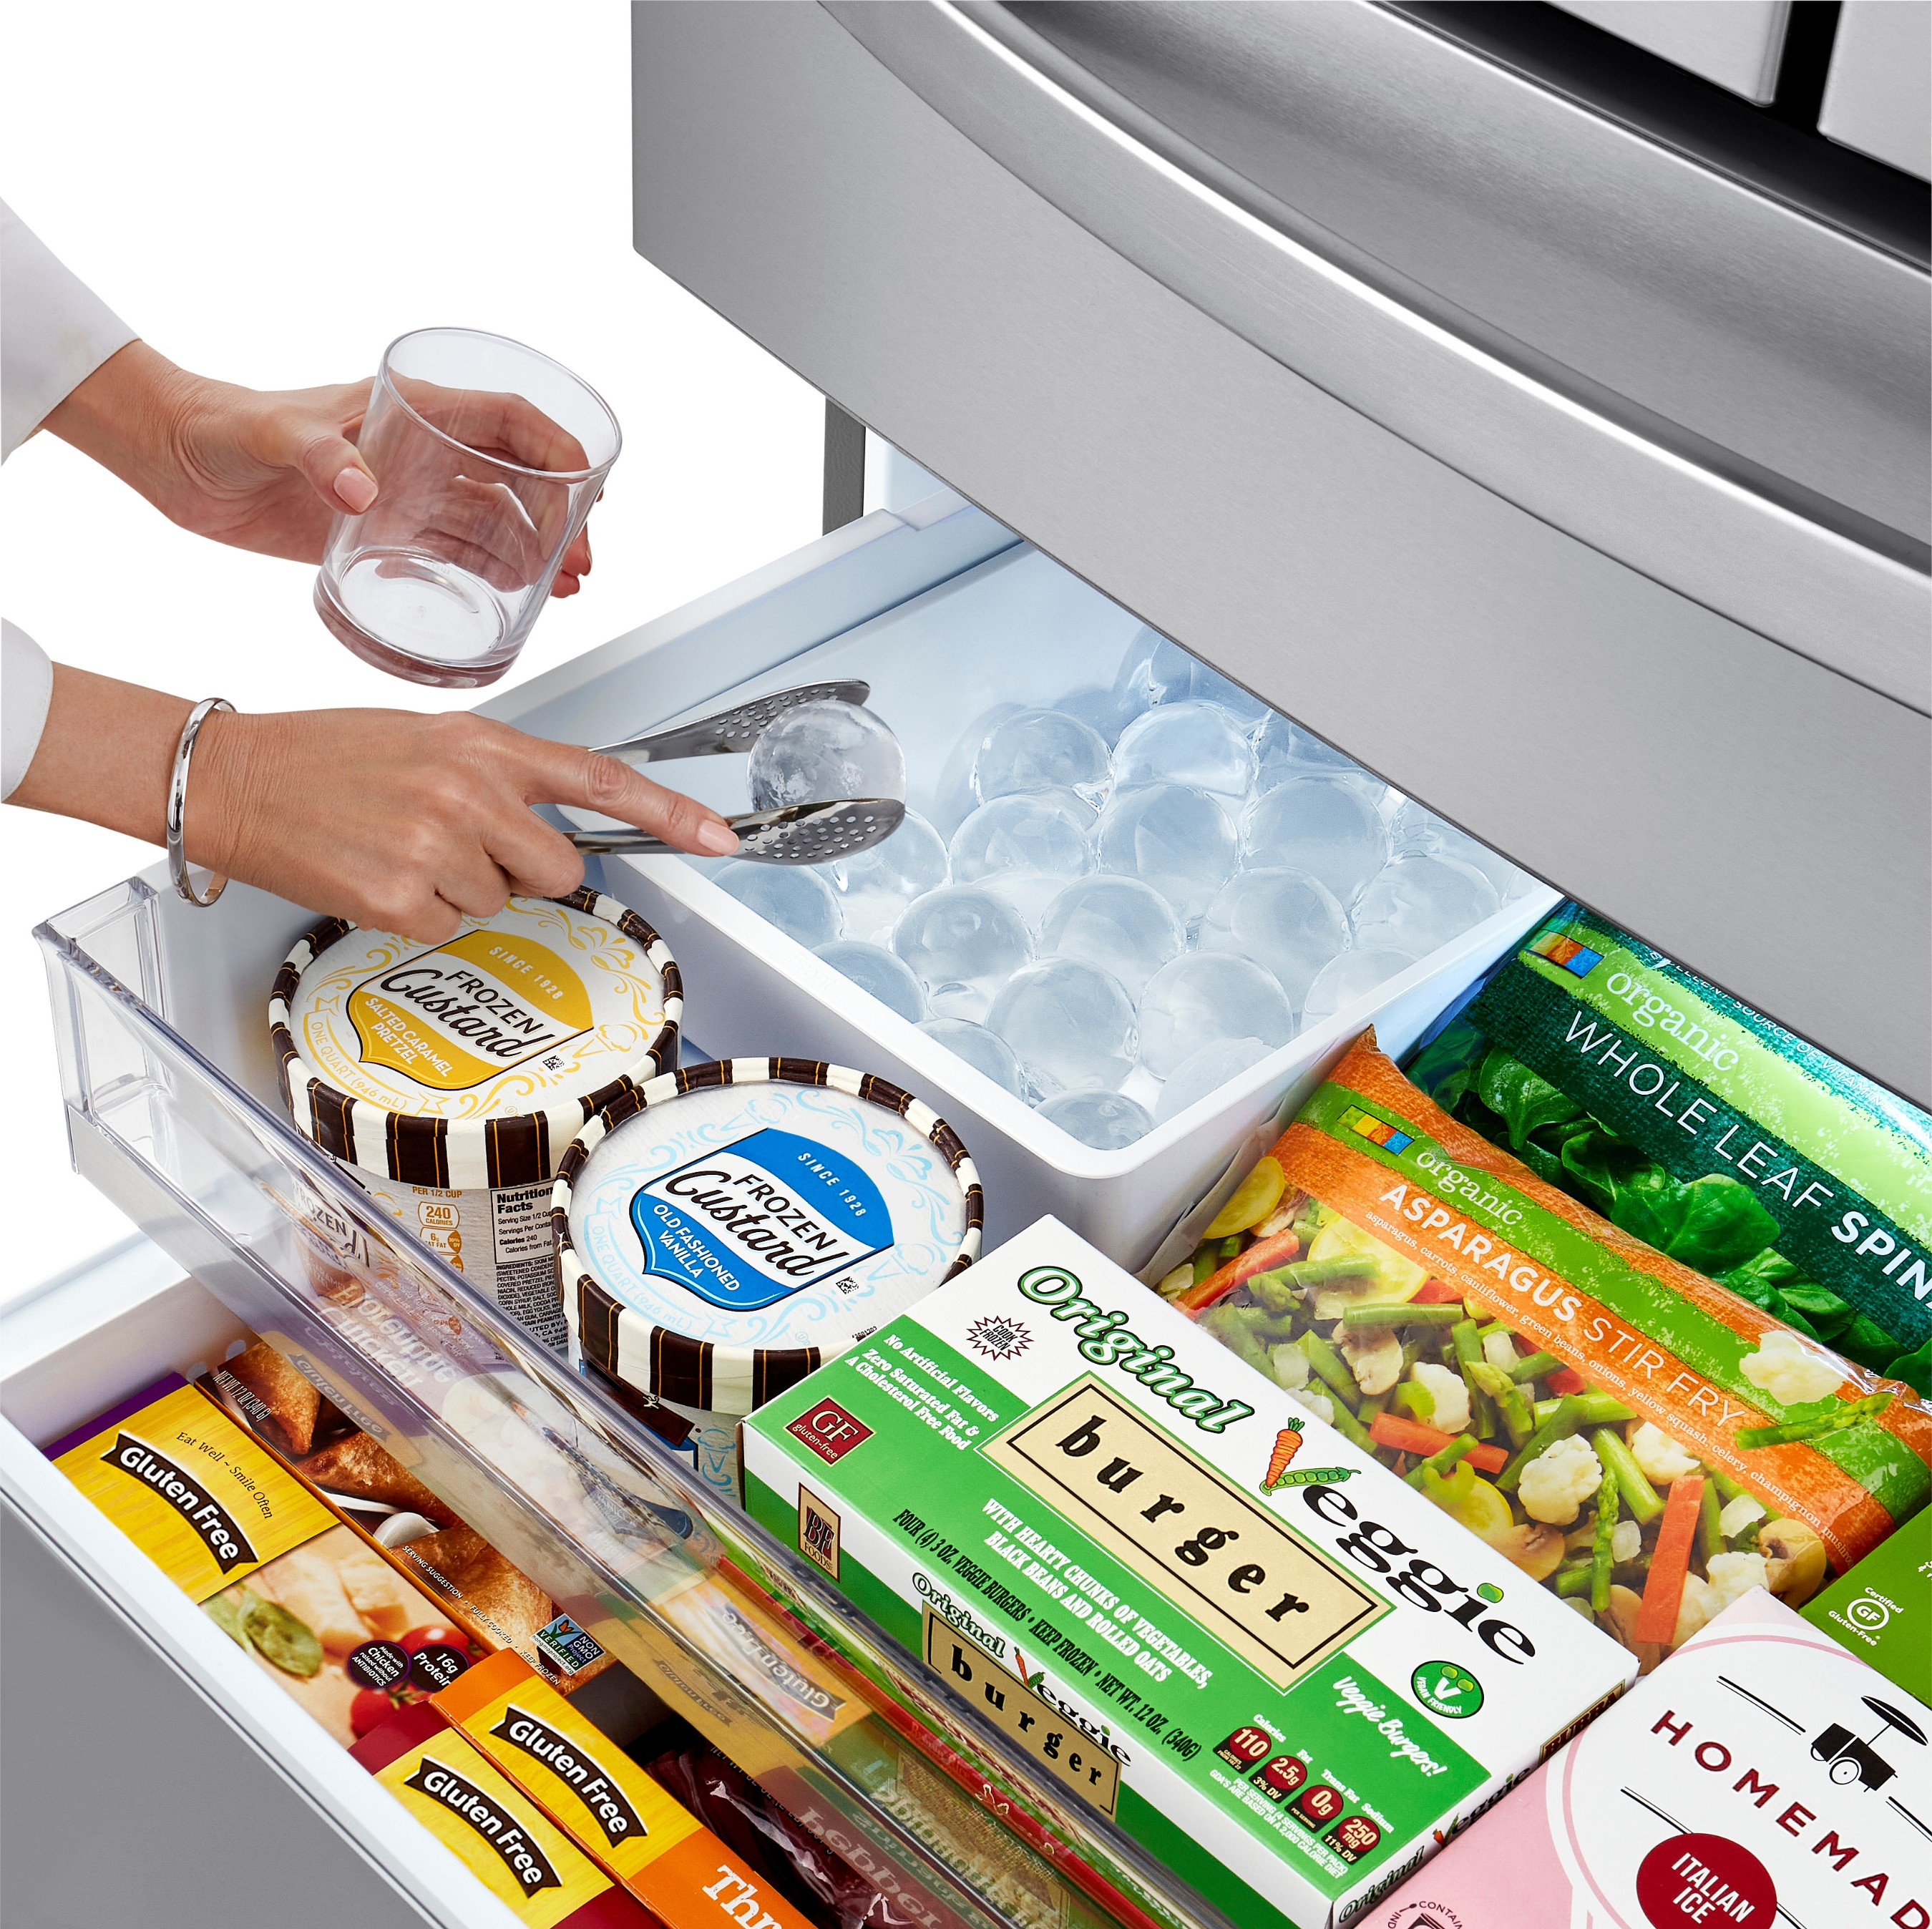 2020 LG smart refrigerators with Craft Ice have been upgraded to include the option to double the Craft Ice output - from three to six ice spheres - in the same amount of time.